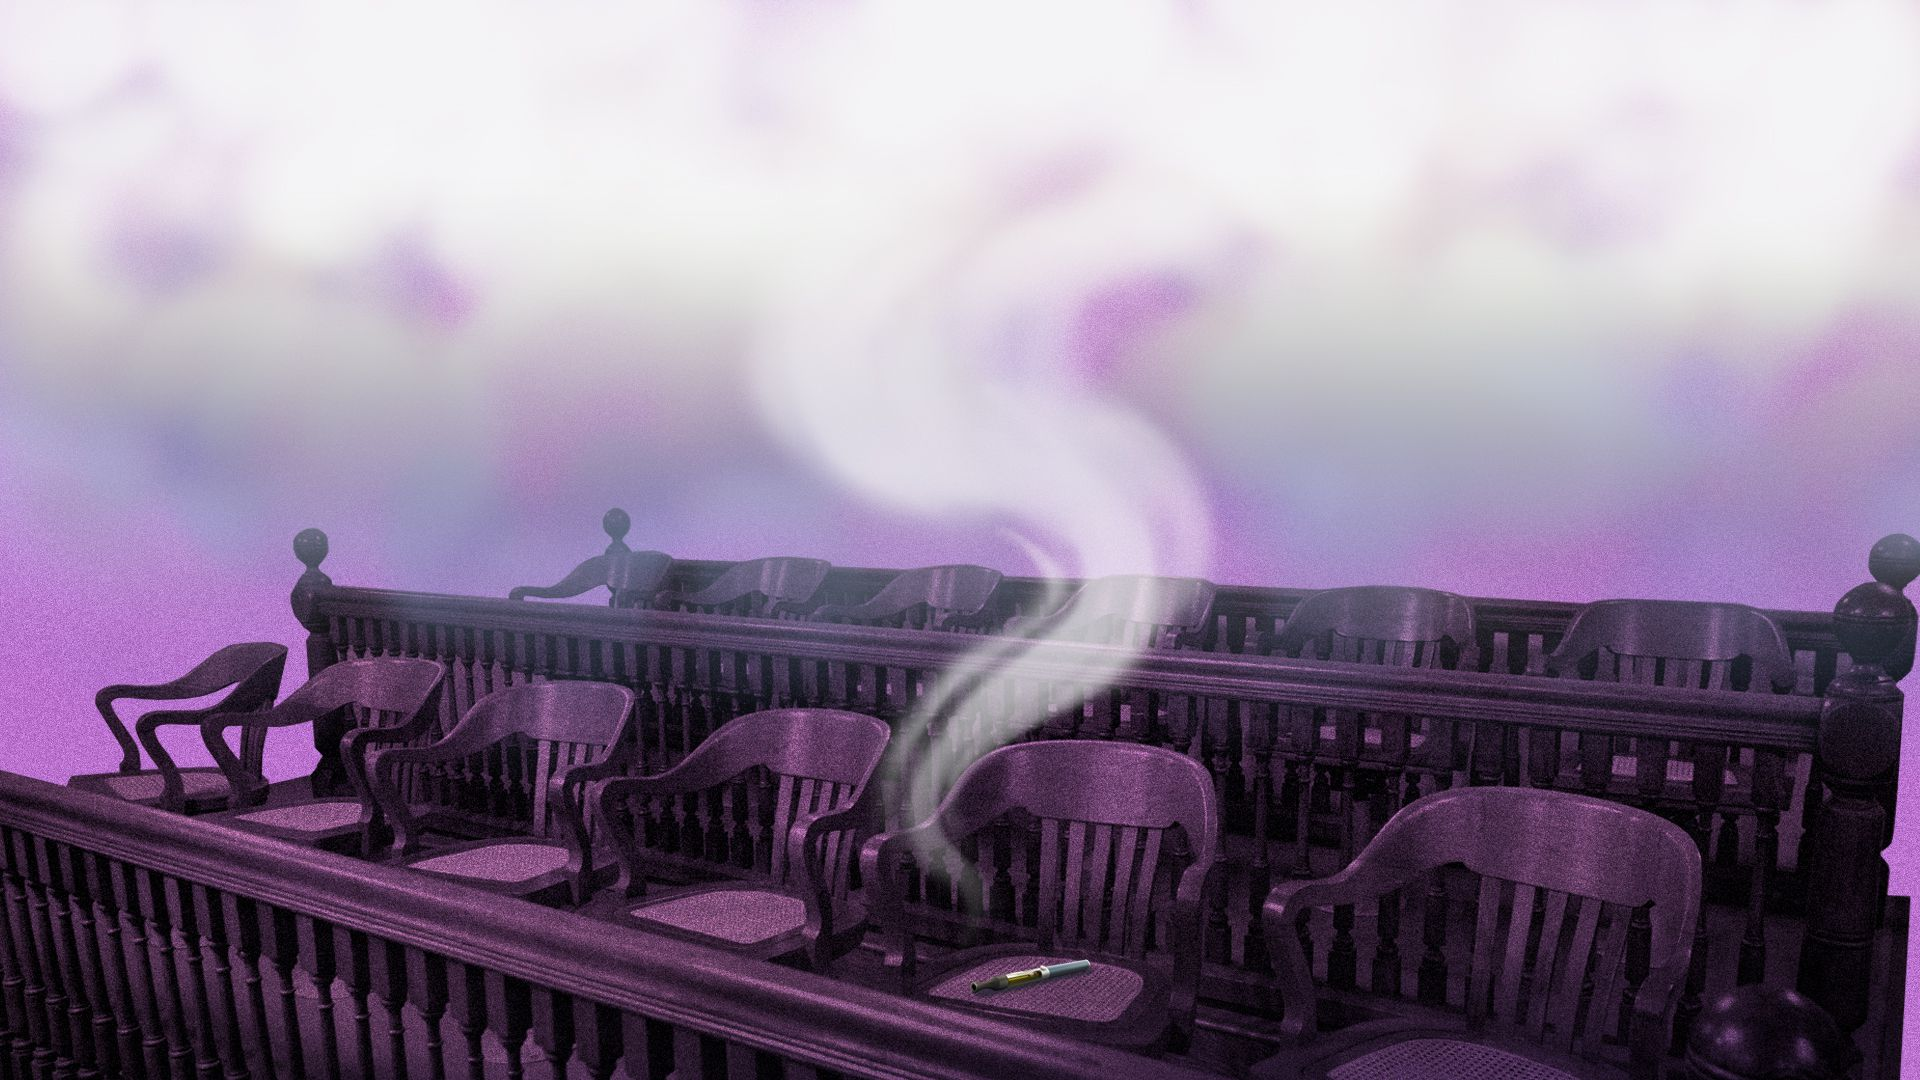 A row of jury chairs in a courtroom with one e-cigarette on a chair causing the air around the chairs to be smokey.